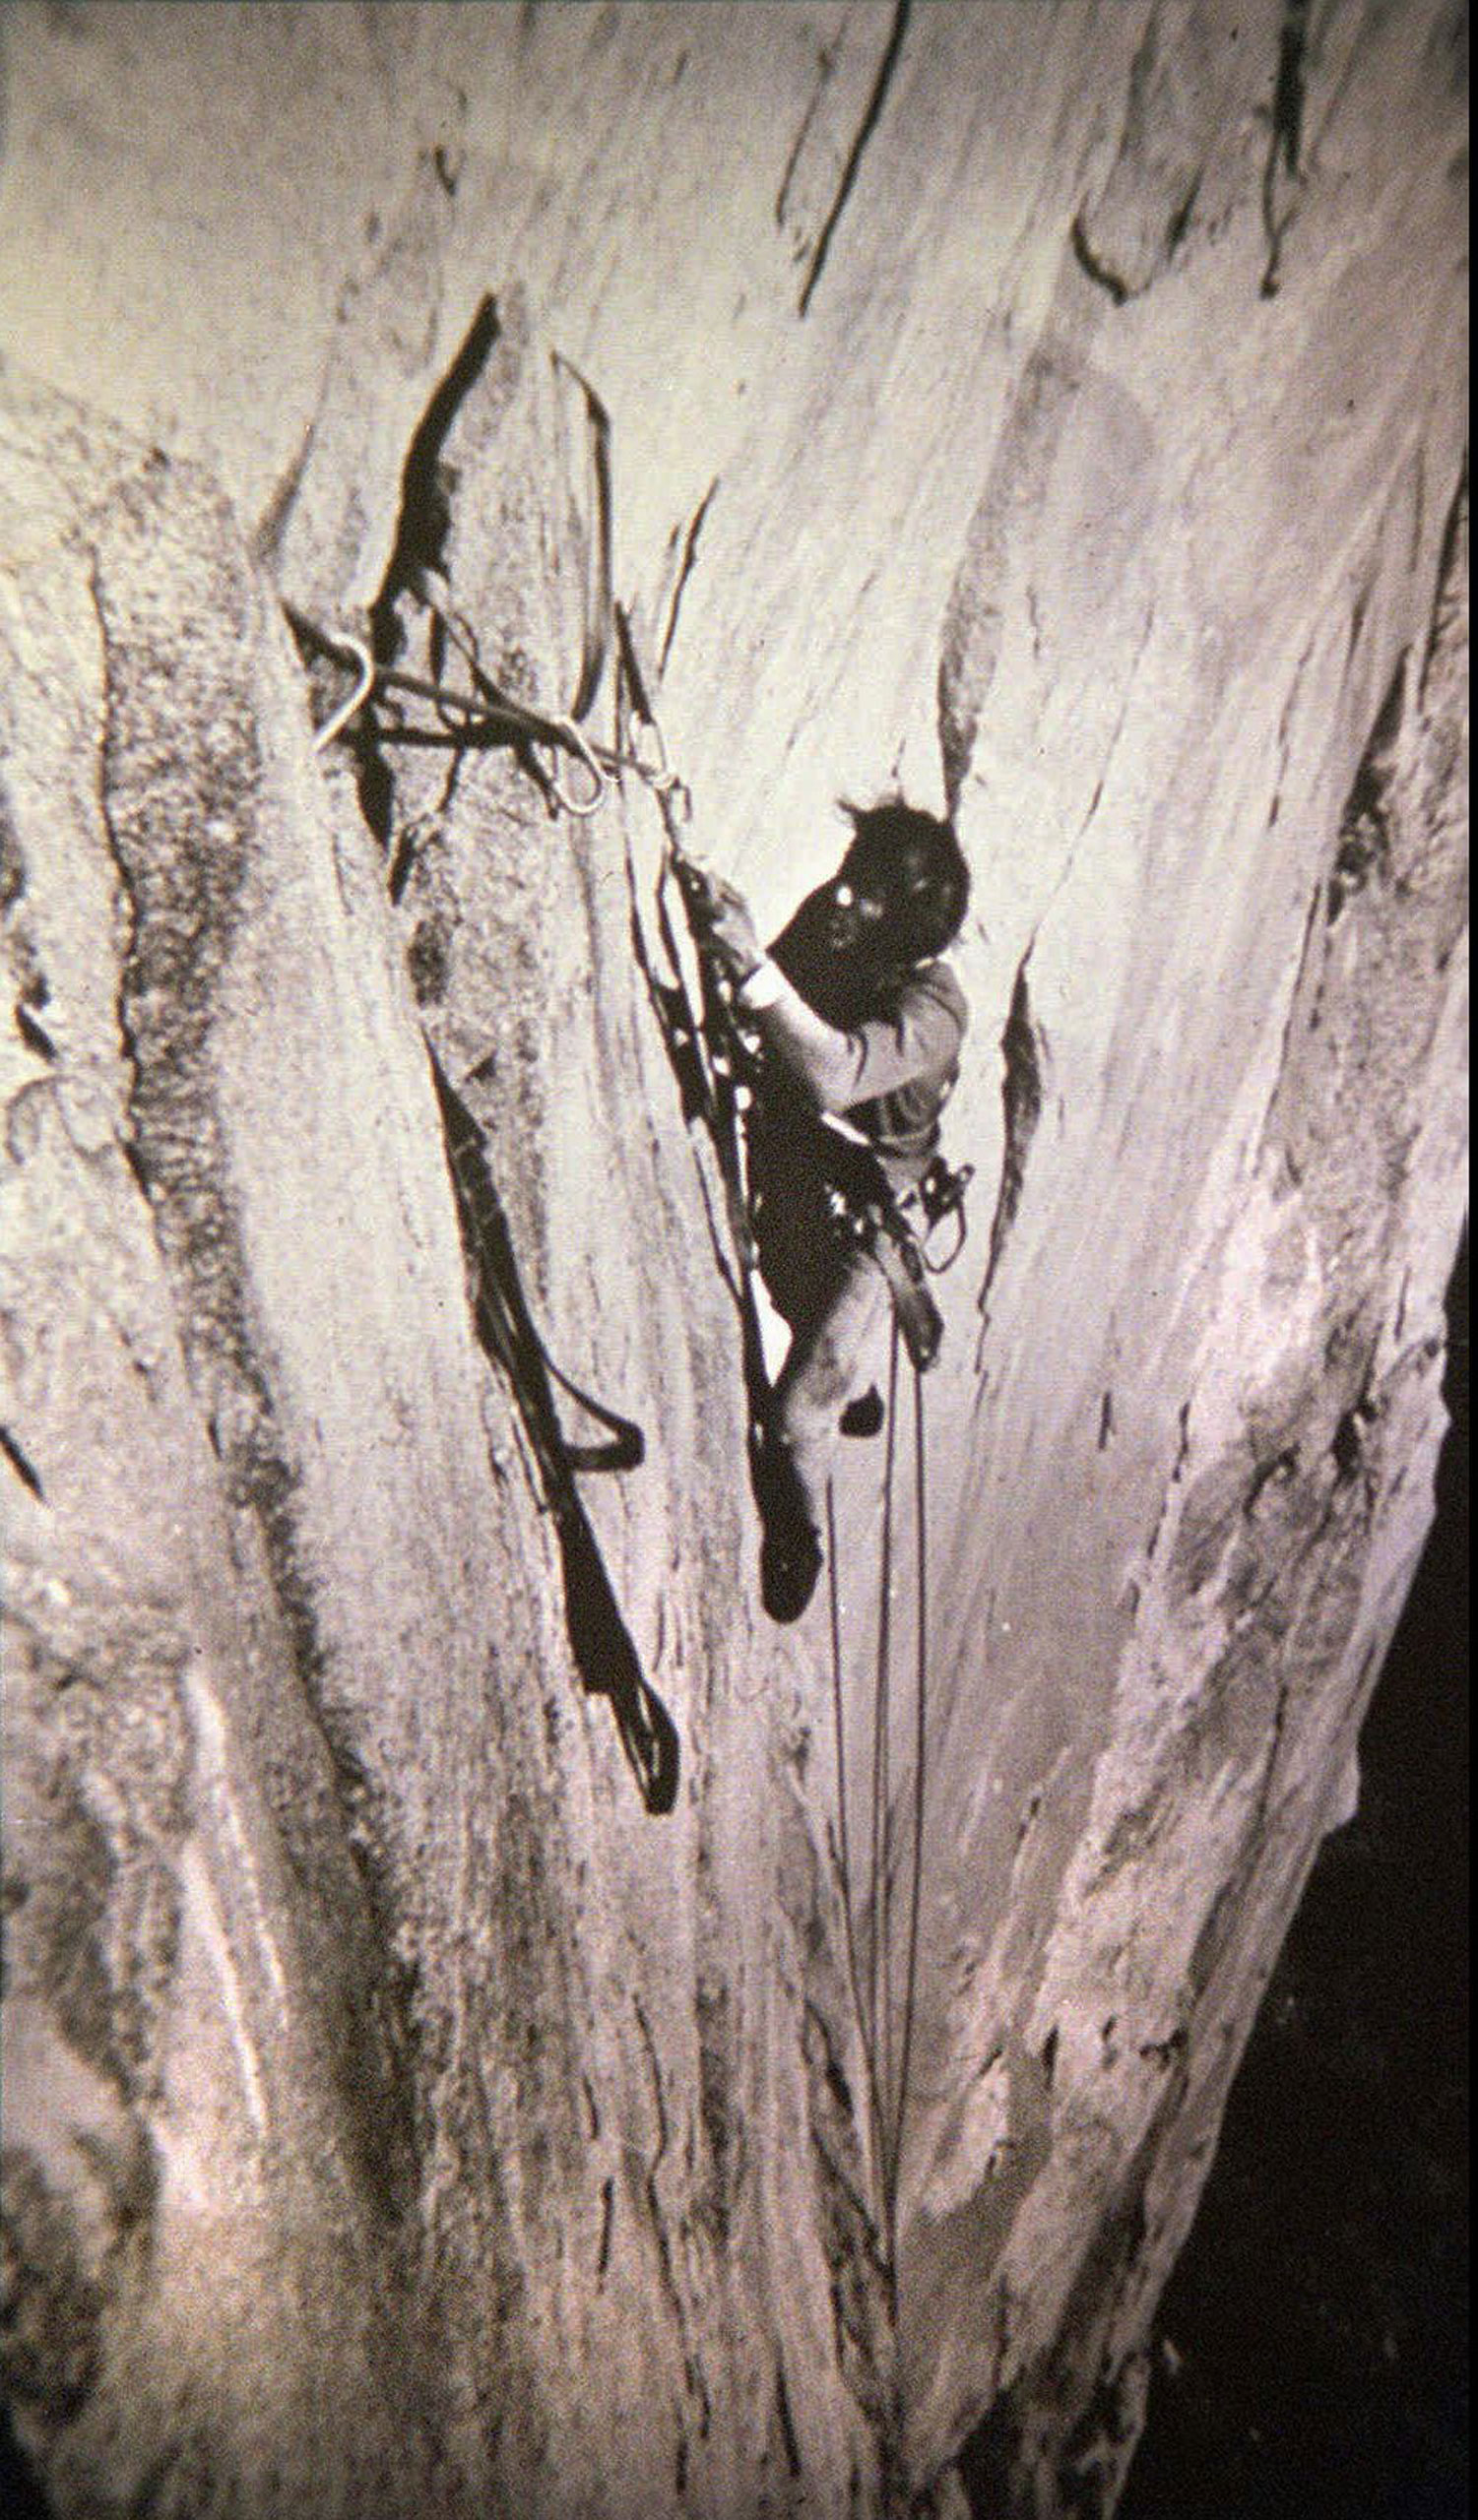 1970: Warren Harding wrestles the Dawn Wall                                                              Warren Harding and Dean Caldwell (no relation to Tommy Caldwell) were the first to climb the Dawn Wall in 1970. At the time, the route was called Wall of the Early Morning Light. The team heavily relied on ropes and bolts, yet still the climb was a struggle because vast swaths of the route are very sheer and very steep. To boot, the team's progress was stymied for several days by a severe storm. Park rangers attempted a rescue mission but Harding, determined to make it to the top, shooed them away.